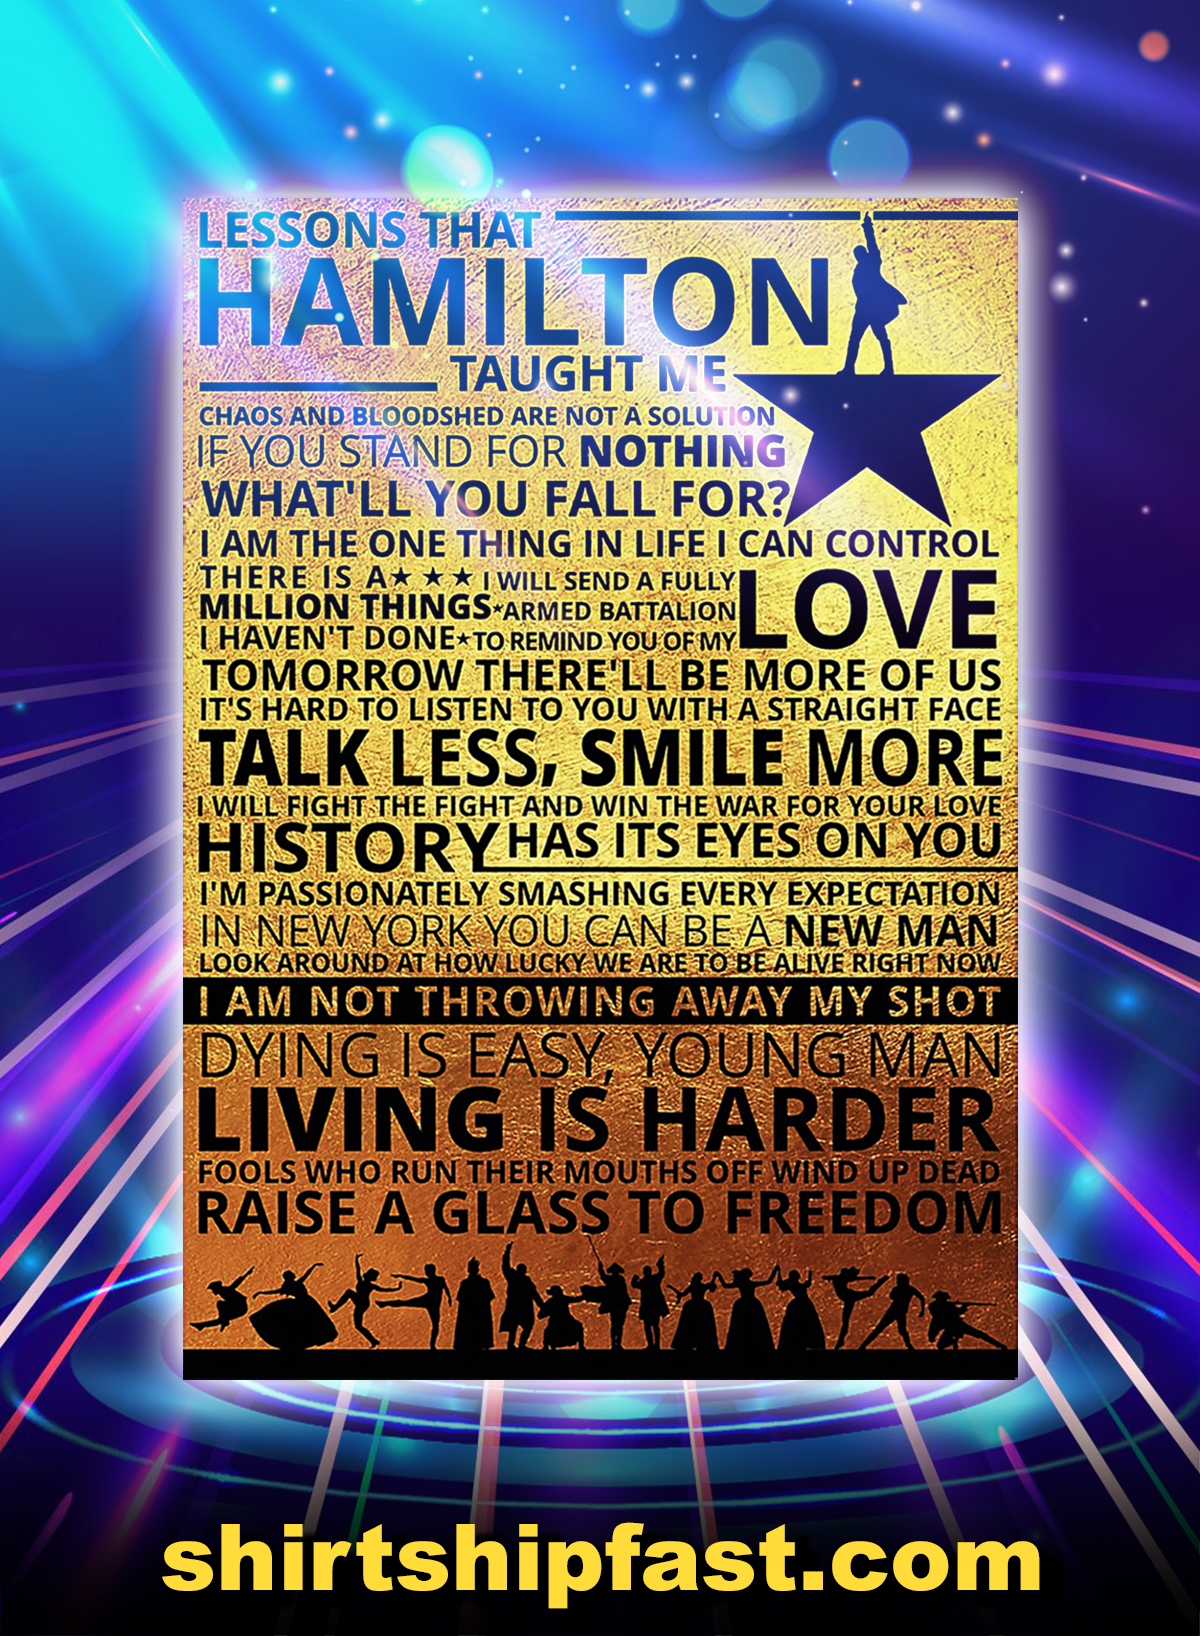 Poster Lessons hamilton taught me - A1